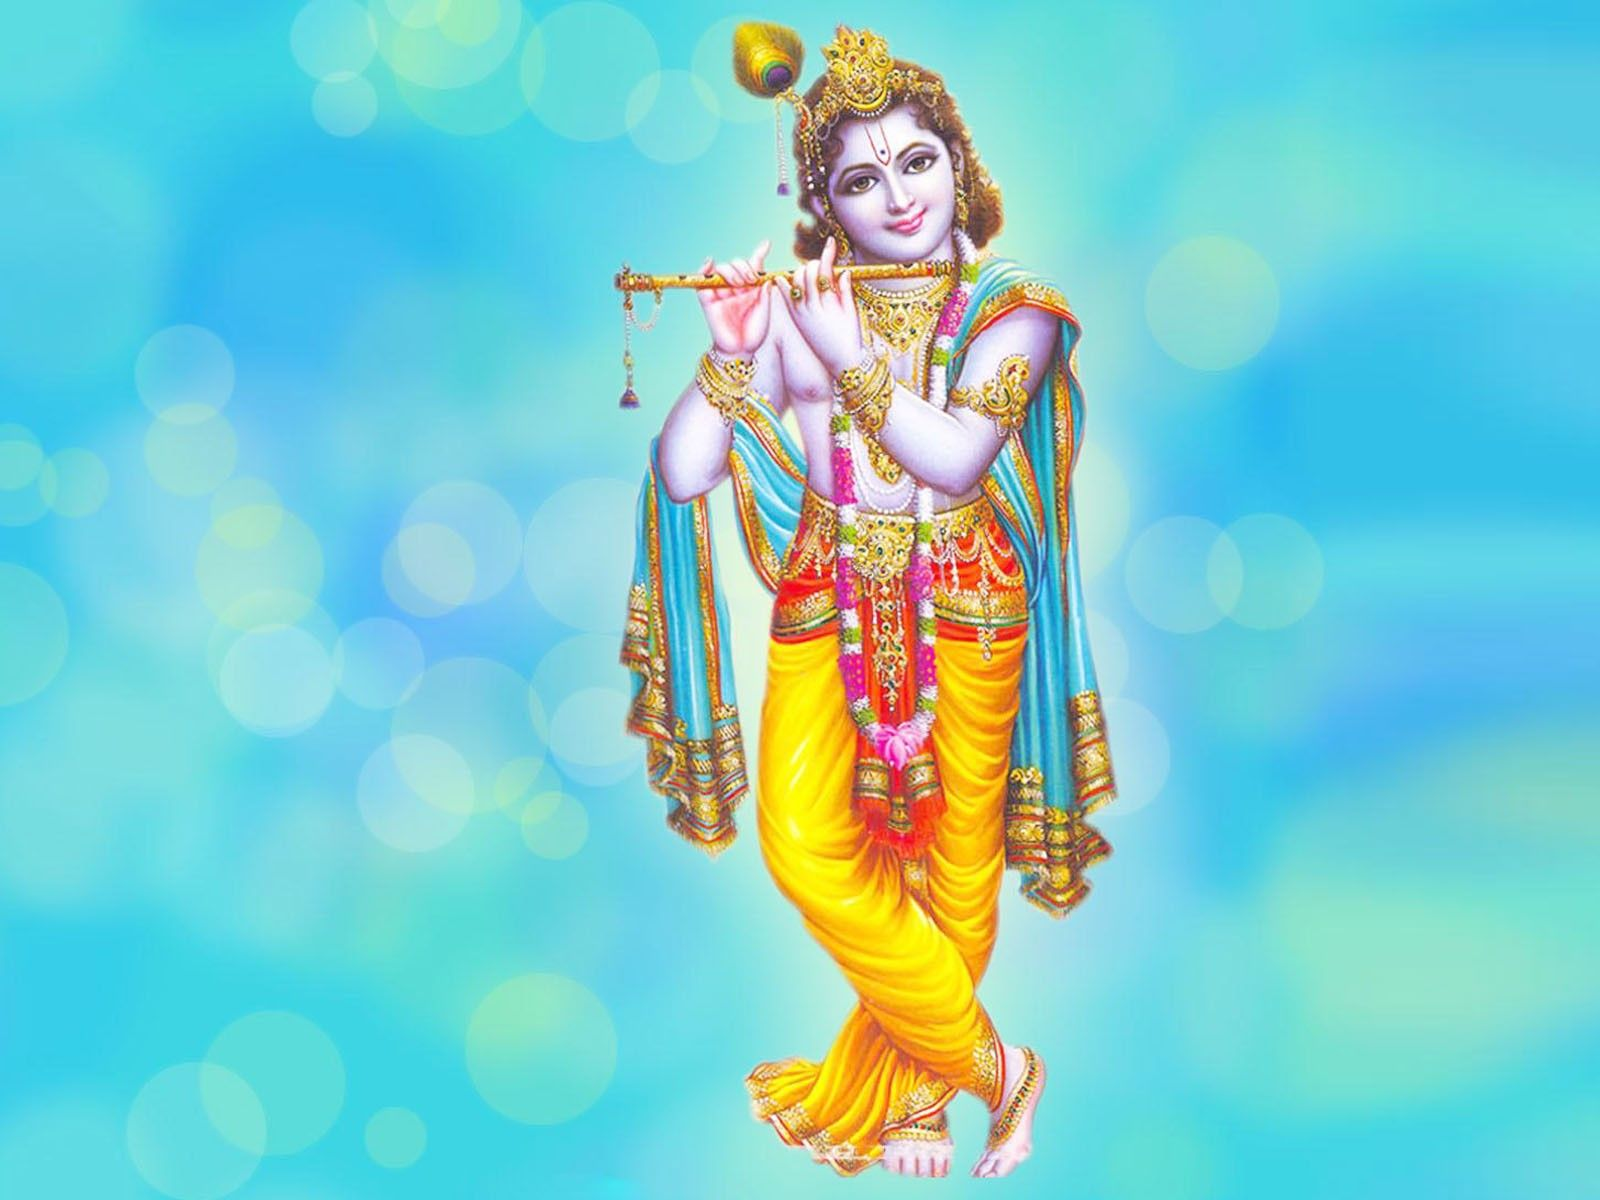 Hd wallpaper lord krishna - Lord Krishna